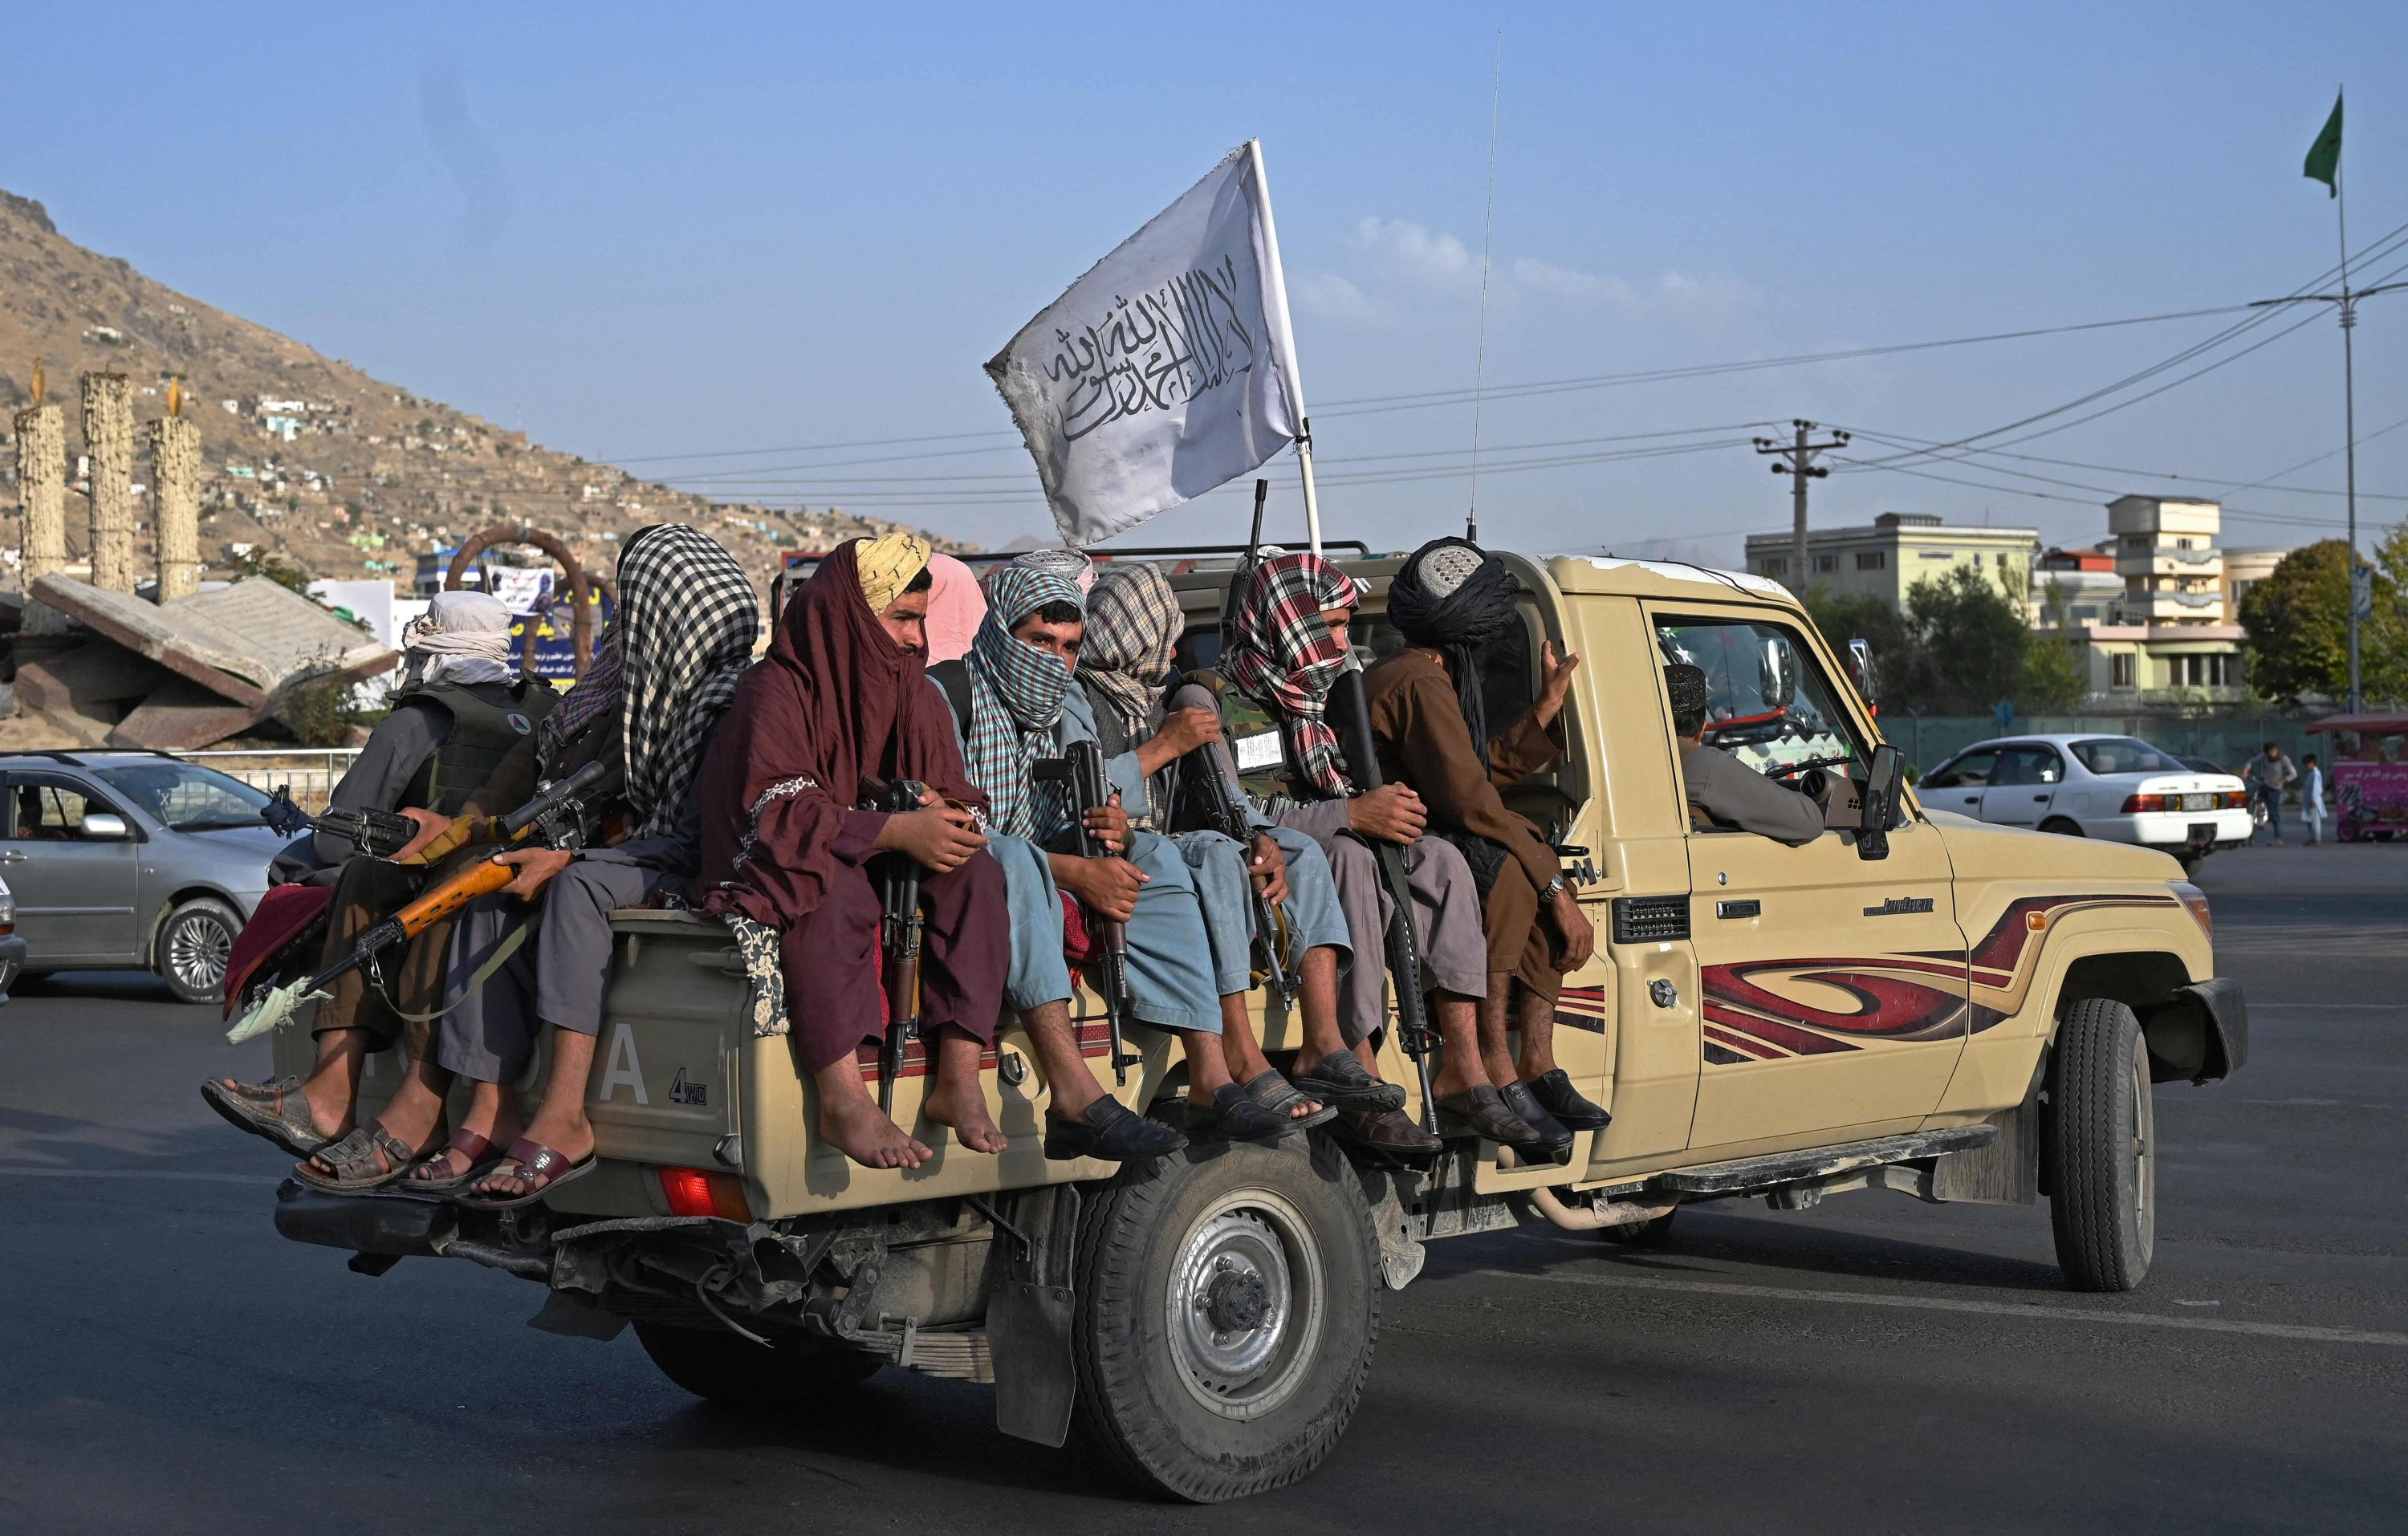 Taliban fighters in a vehicle patrol the streets of Kabul on Aug. 23, 2021. (AFP Photo)